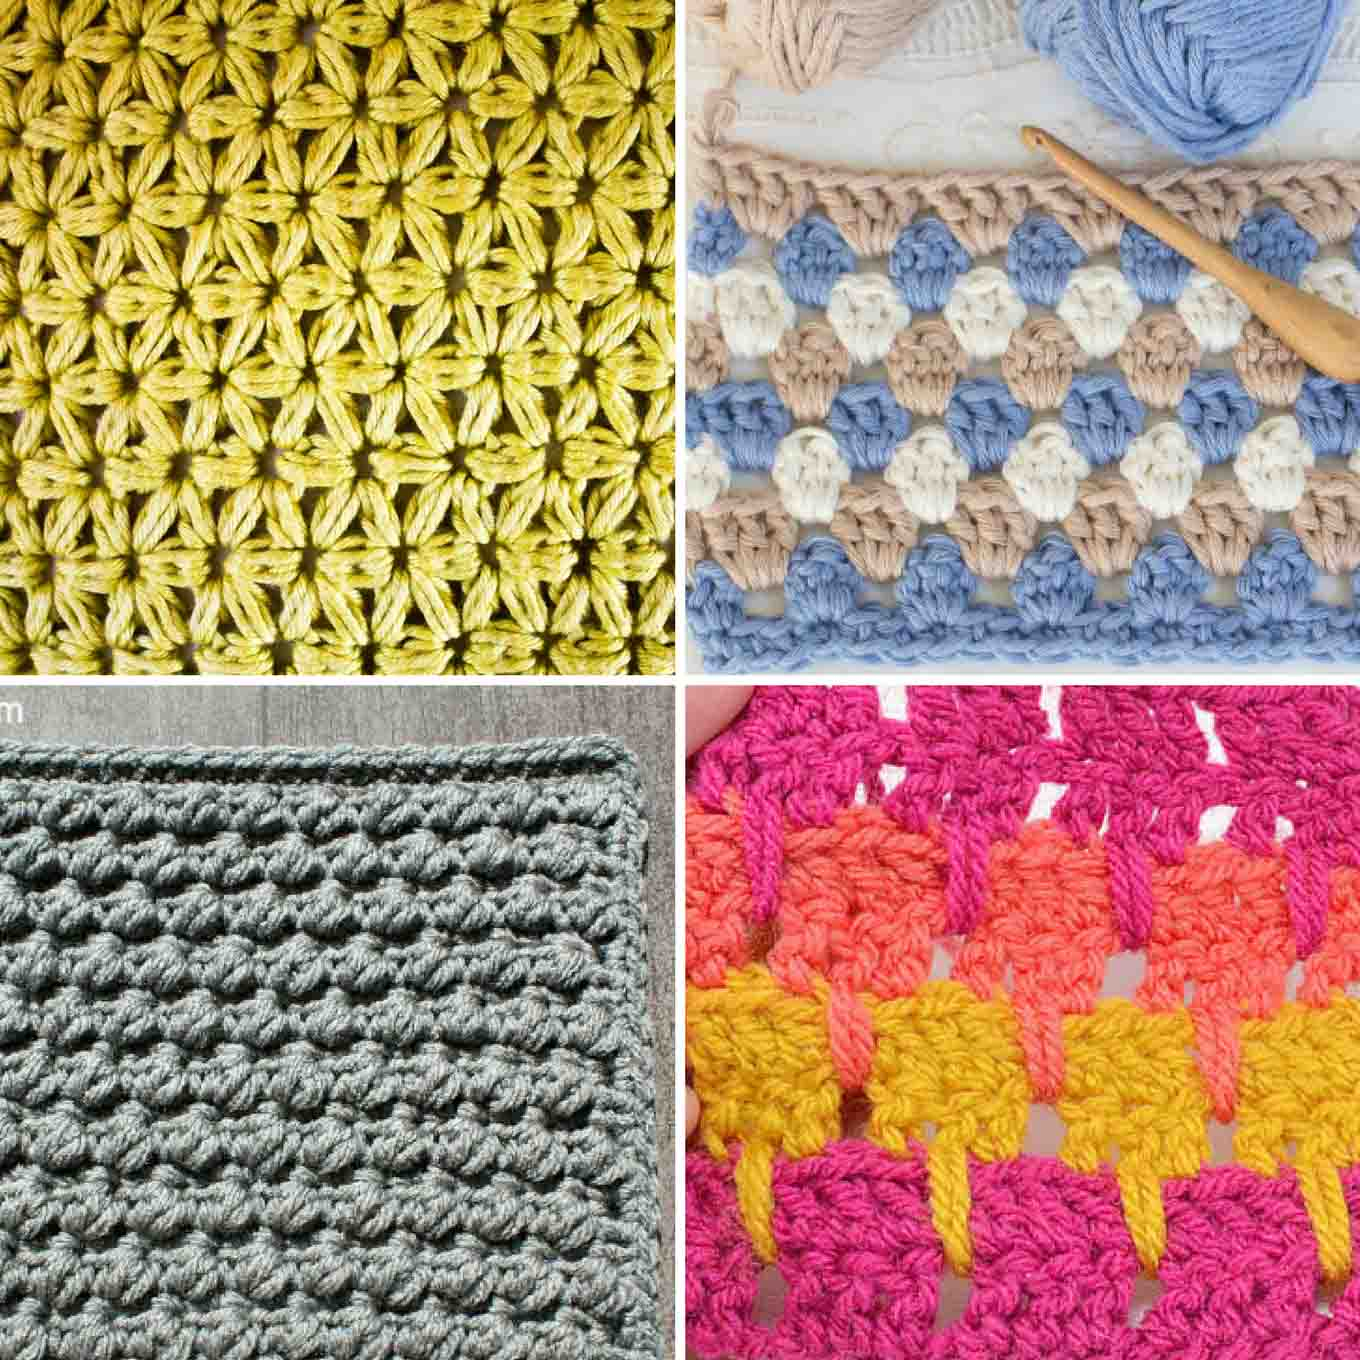 Crochet Stitch Pattern  Simple Tips To Master Crochet Stitches Crochet And Knitting